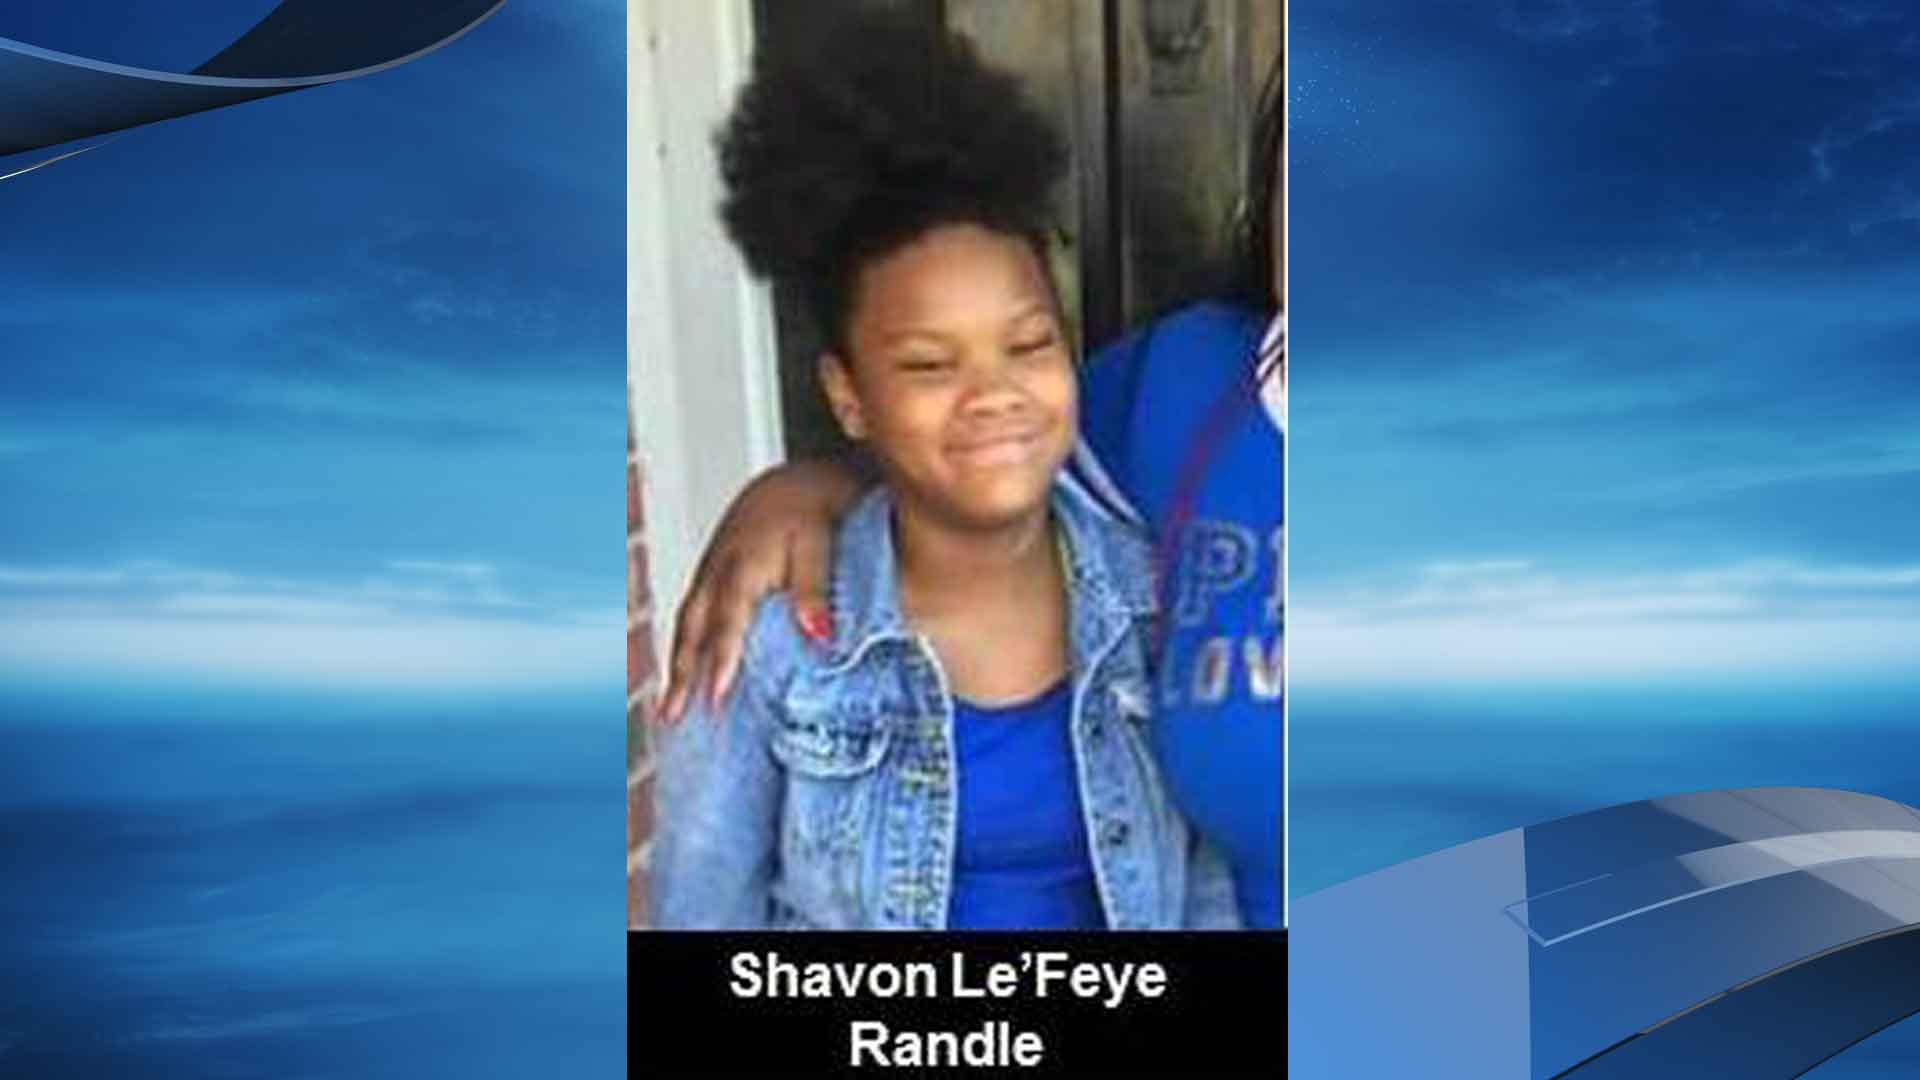 The Lancaster Police Department is searching for 13-year-old Shavon Le'Feye Randle. She was last seen Wednesday at 10 a.m. in Lancaster. (Photo courtesy: Lancaster Police Department)